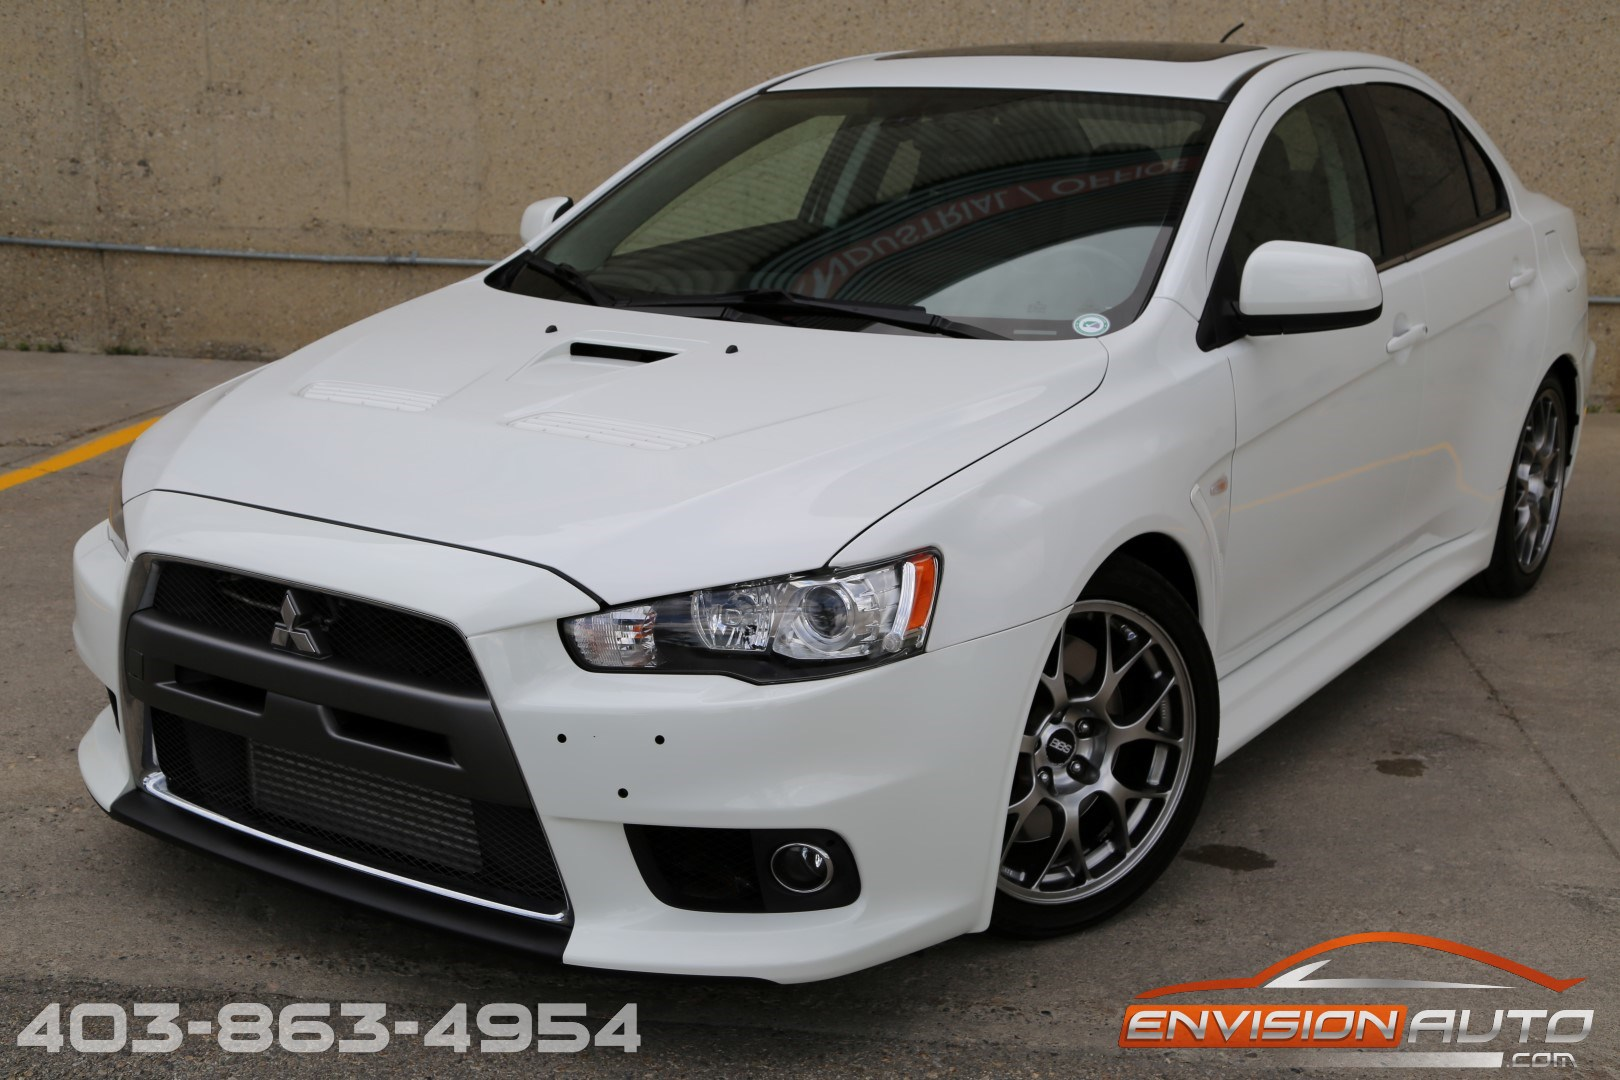 2010 Mitsubishi Lancer Evolution Mr Evo X Modded 380